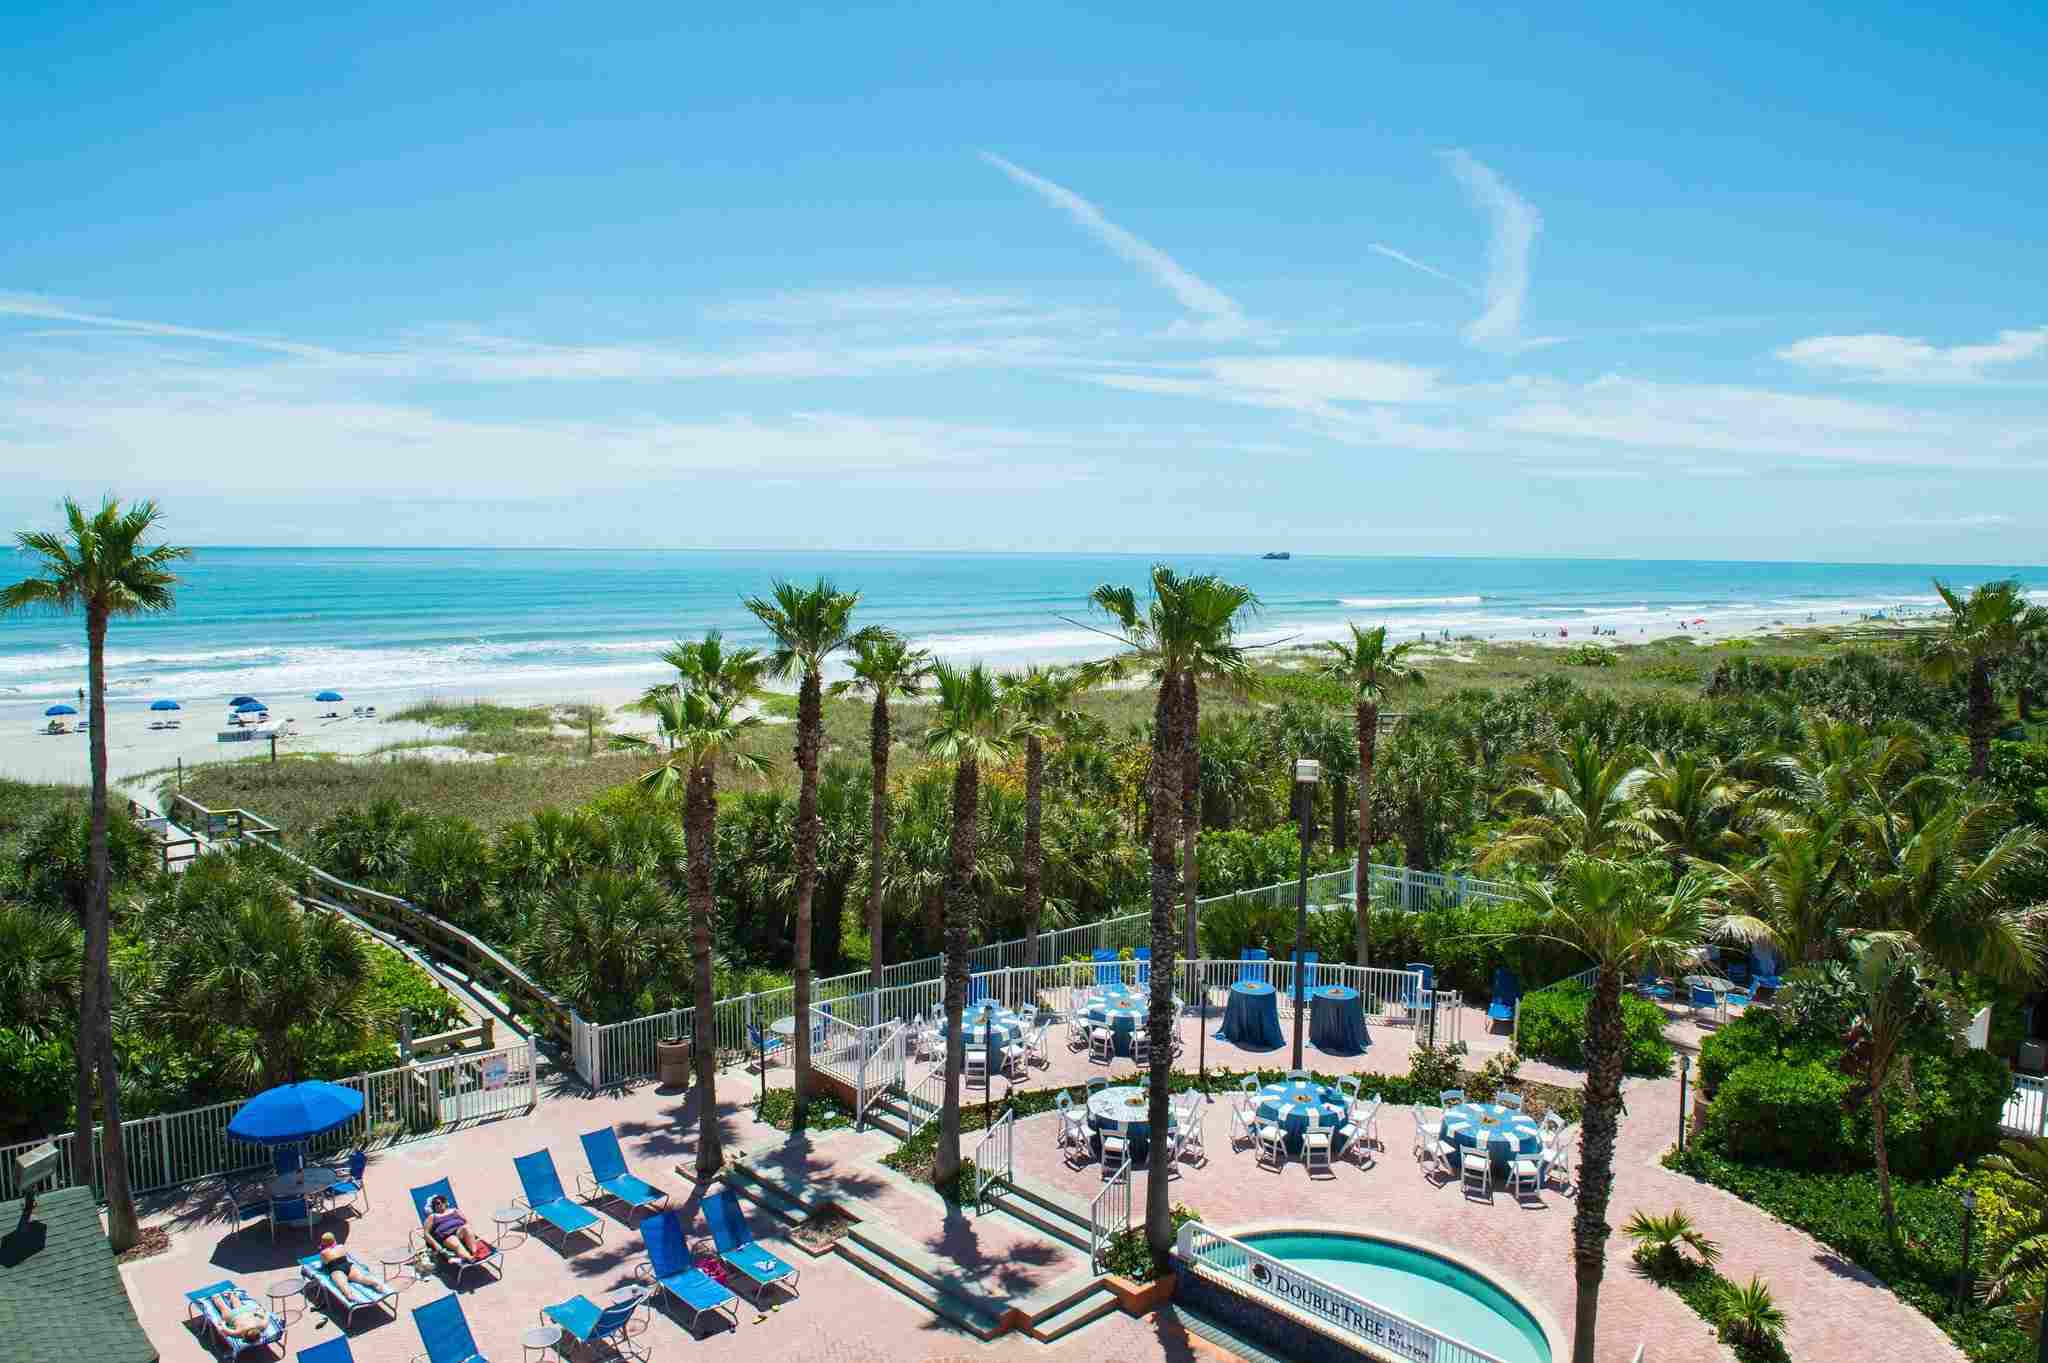 Best For Romance Doubletree By Hilton Hotel Cocoa Beach Oceanfront